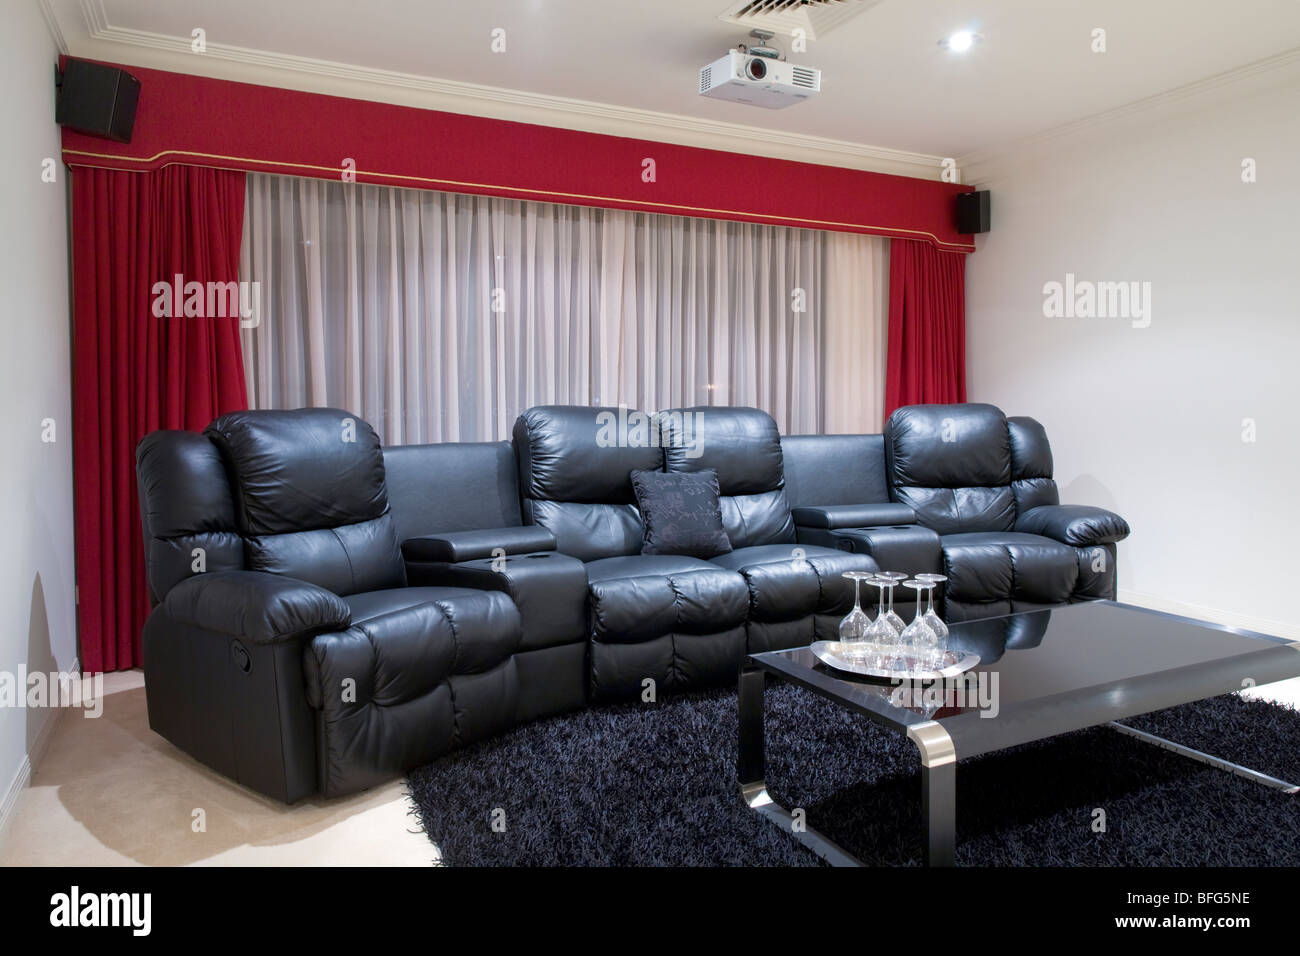 Home Theater Room With Black Leather Recliner Chairs, Red Curtains, Black  Rug And Table With Wine Glasses